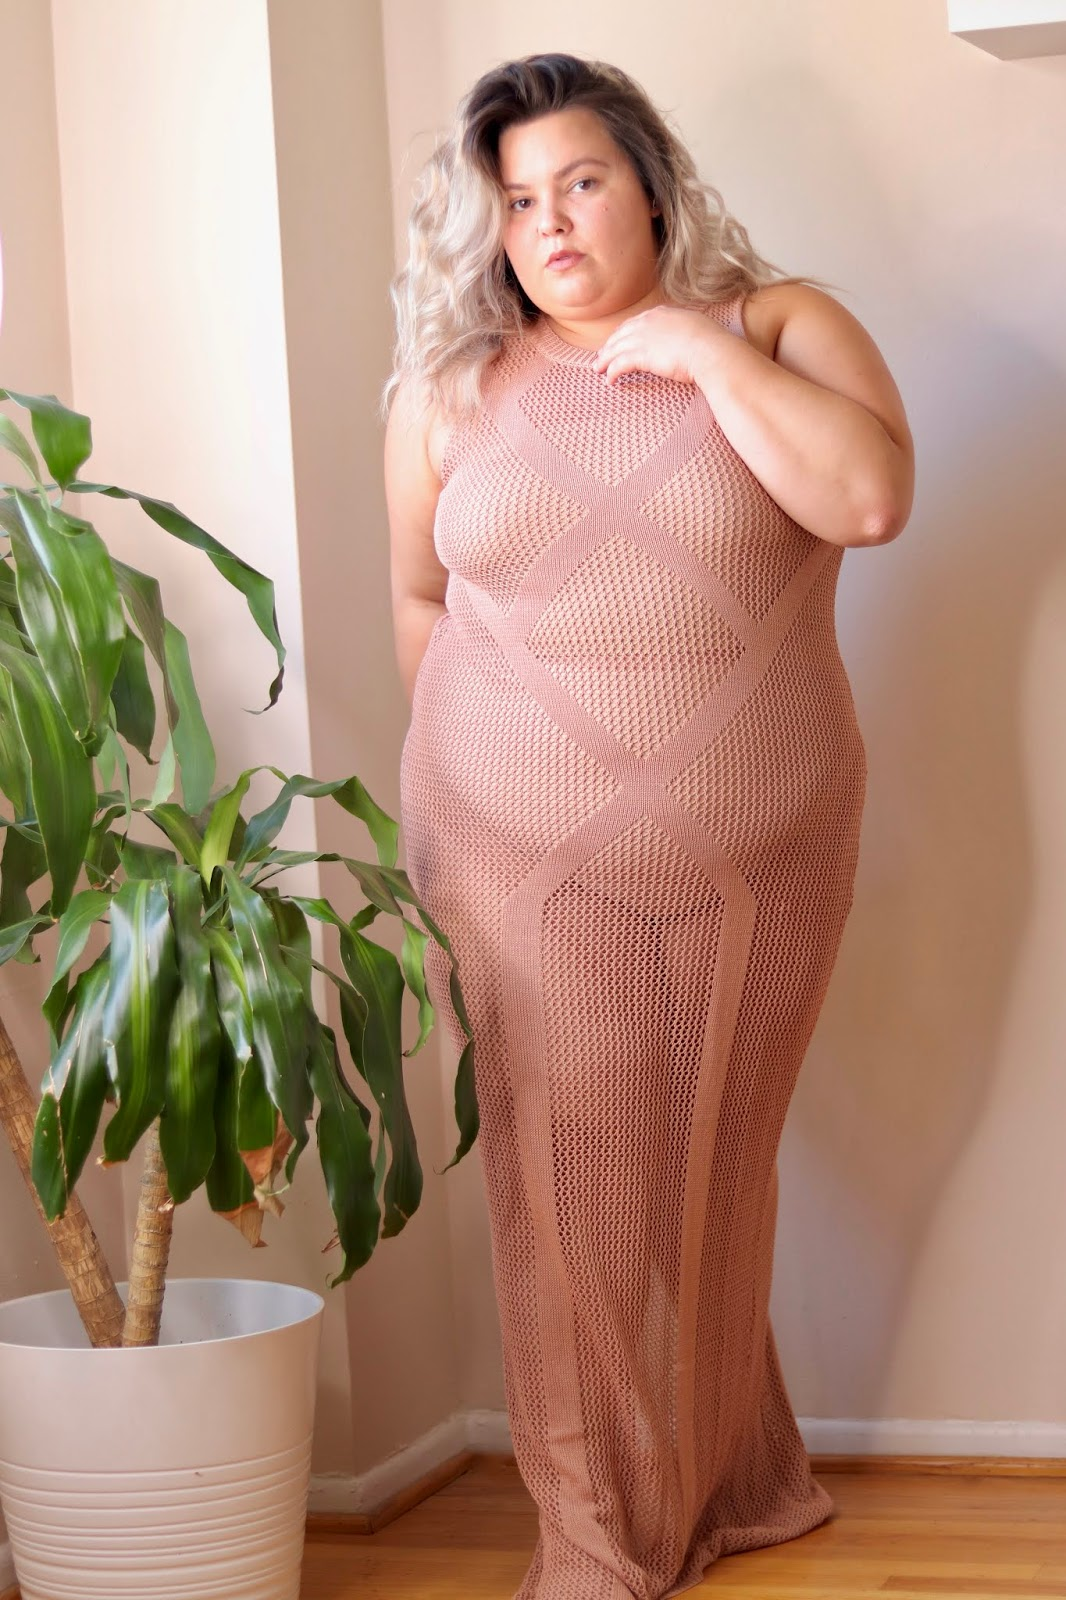 Chicago Plus Size Petite Fashion Blogger, influencer, YouTuber, and model Natalie Craig, of Natalie in the City, reviews Fashion Nova Curve's plus size crochet dresses for the beach, pool, and summer. beach cover ups